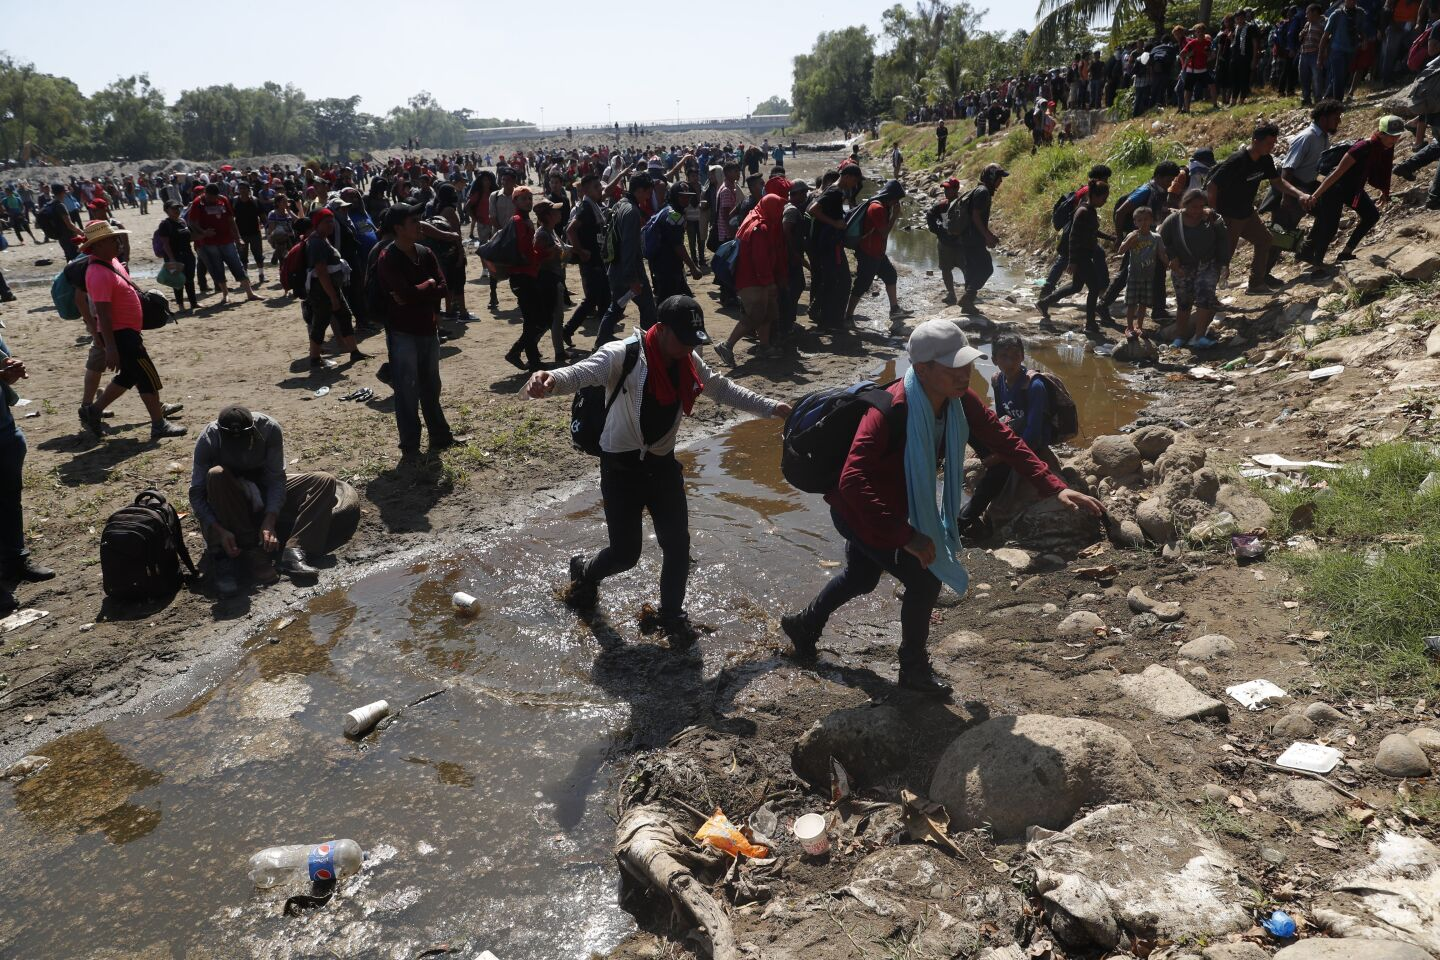 Mandatory Credit: Photo by Esteban Biba/EPA-EFE/REX (10531237n) Hundreds of Central American migrants, mostly Hondurans, cross the Suchiate River that divides Mexico and Guatemala, from the city of Tecun Uman, Guatemala, 20 January 2020. A migrant caravan consisting of Central Americans at the border of Guatemala announced that they would postpone their crossing from 19 to 20 January because they still wait for other partners, with whom they estimate to add between 5,000 and 8,000 people. Migrants cross into Mexico along the Suchíate river after denial of entry, Tecun Uman, Guatemala - 20 Jan 2020 ** Usable by LA, CT and MoD ONLY **